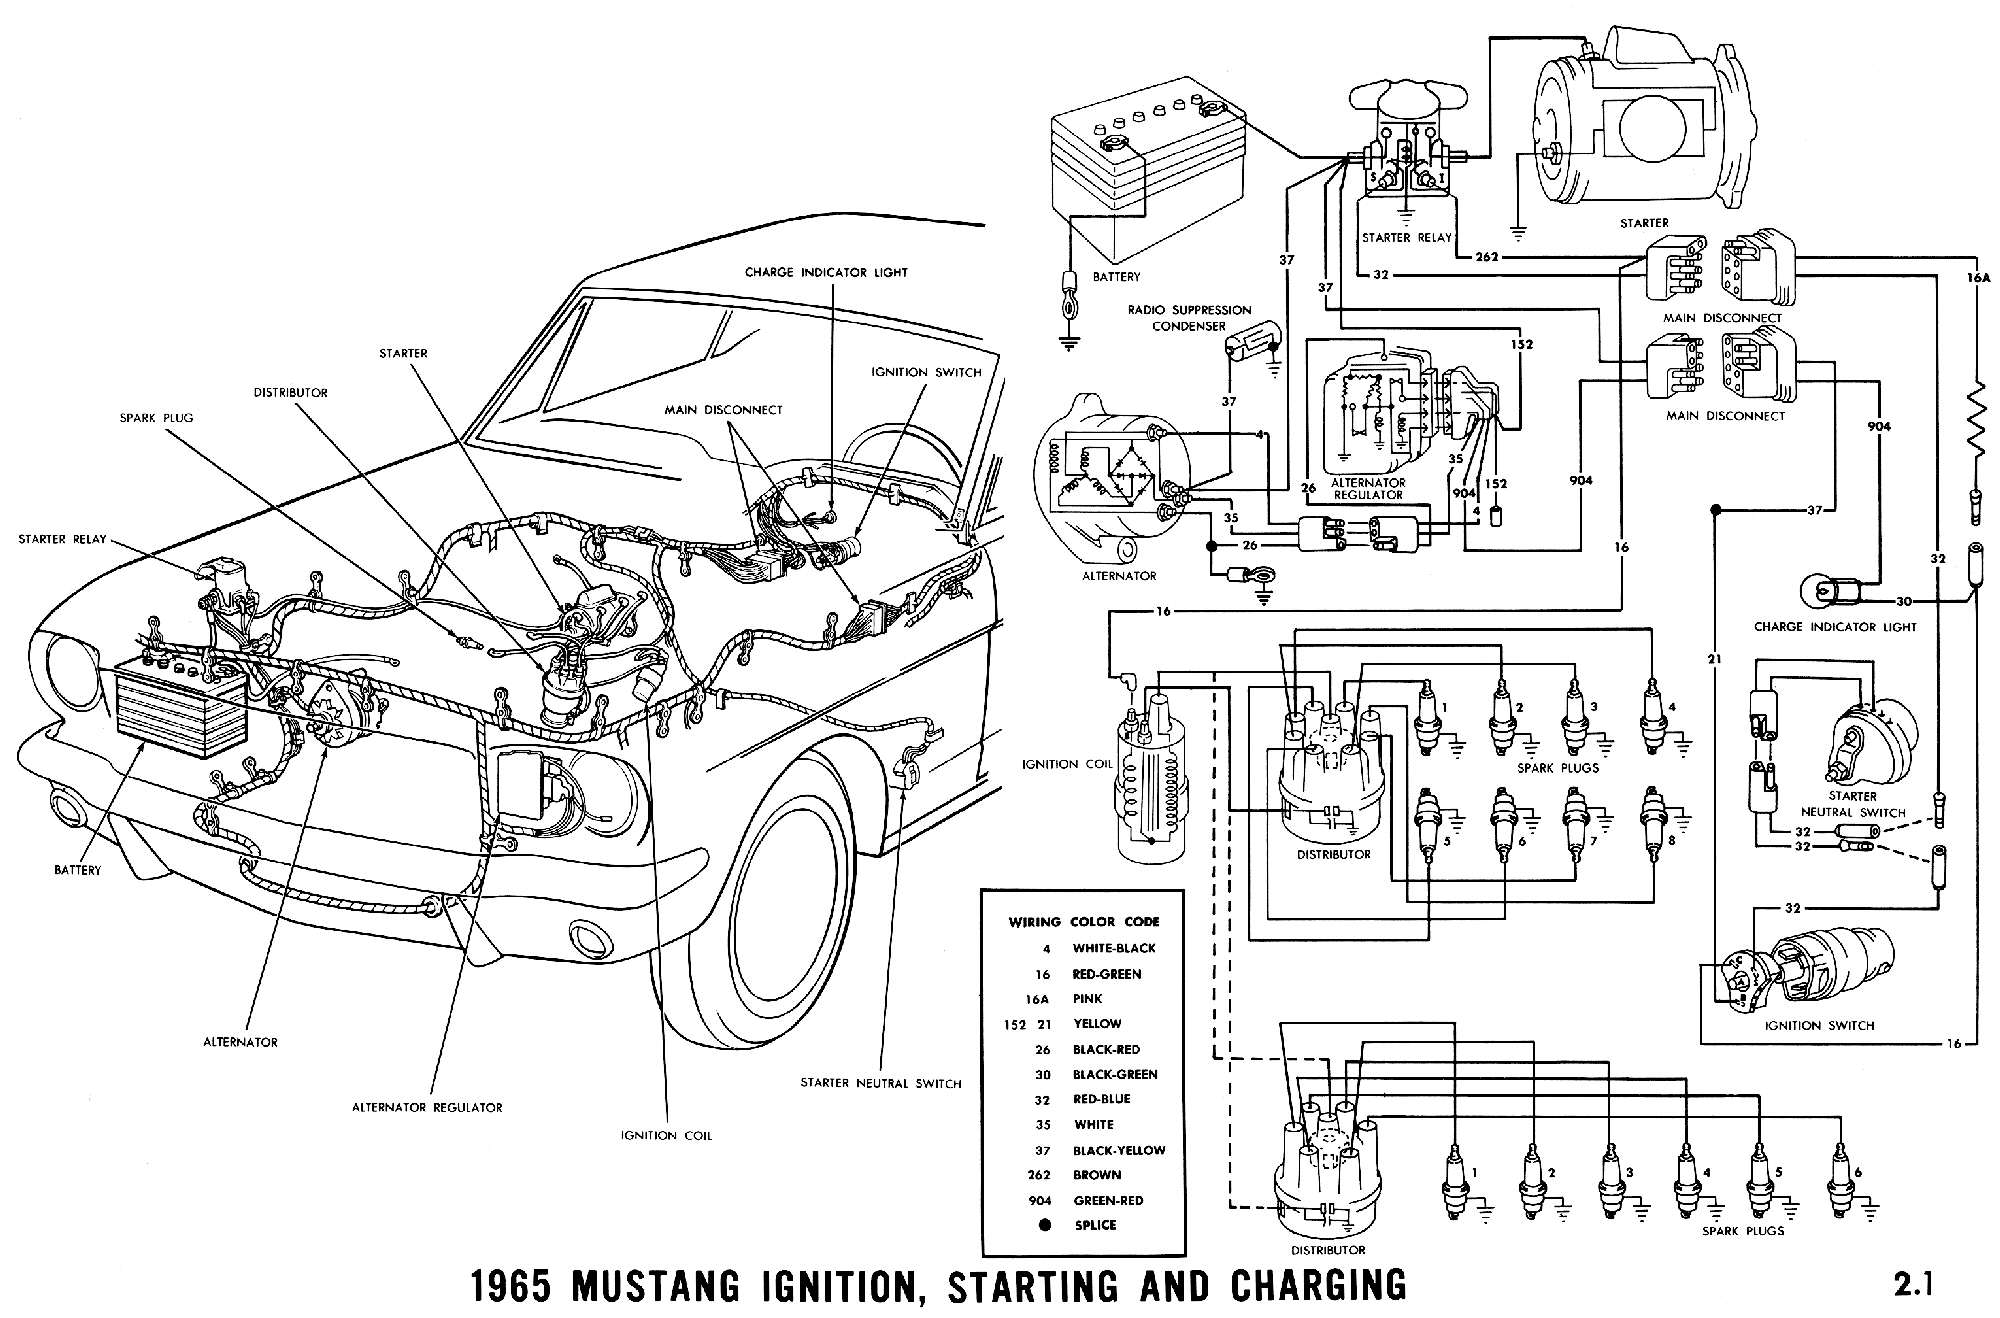 1965 mustang wiring diagrams average joe restoration rh averagejoerestoration com ford mustang wiring diagram 2013 1966 ford mustang wiring diagram